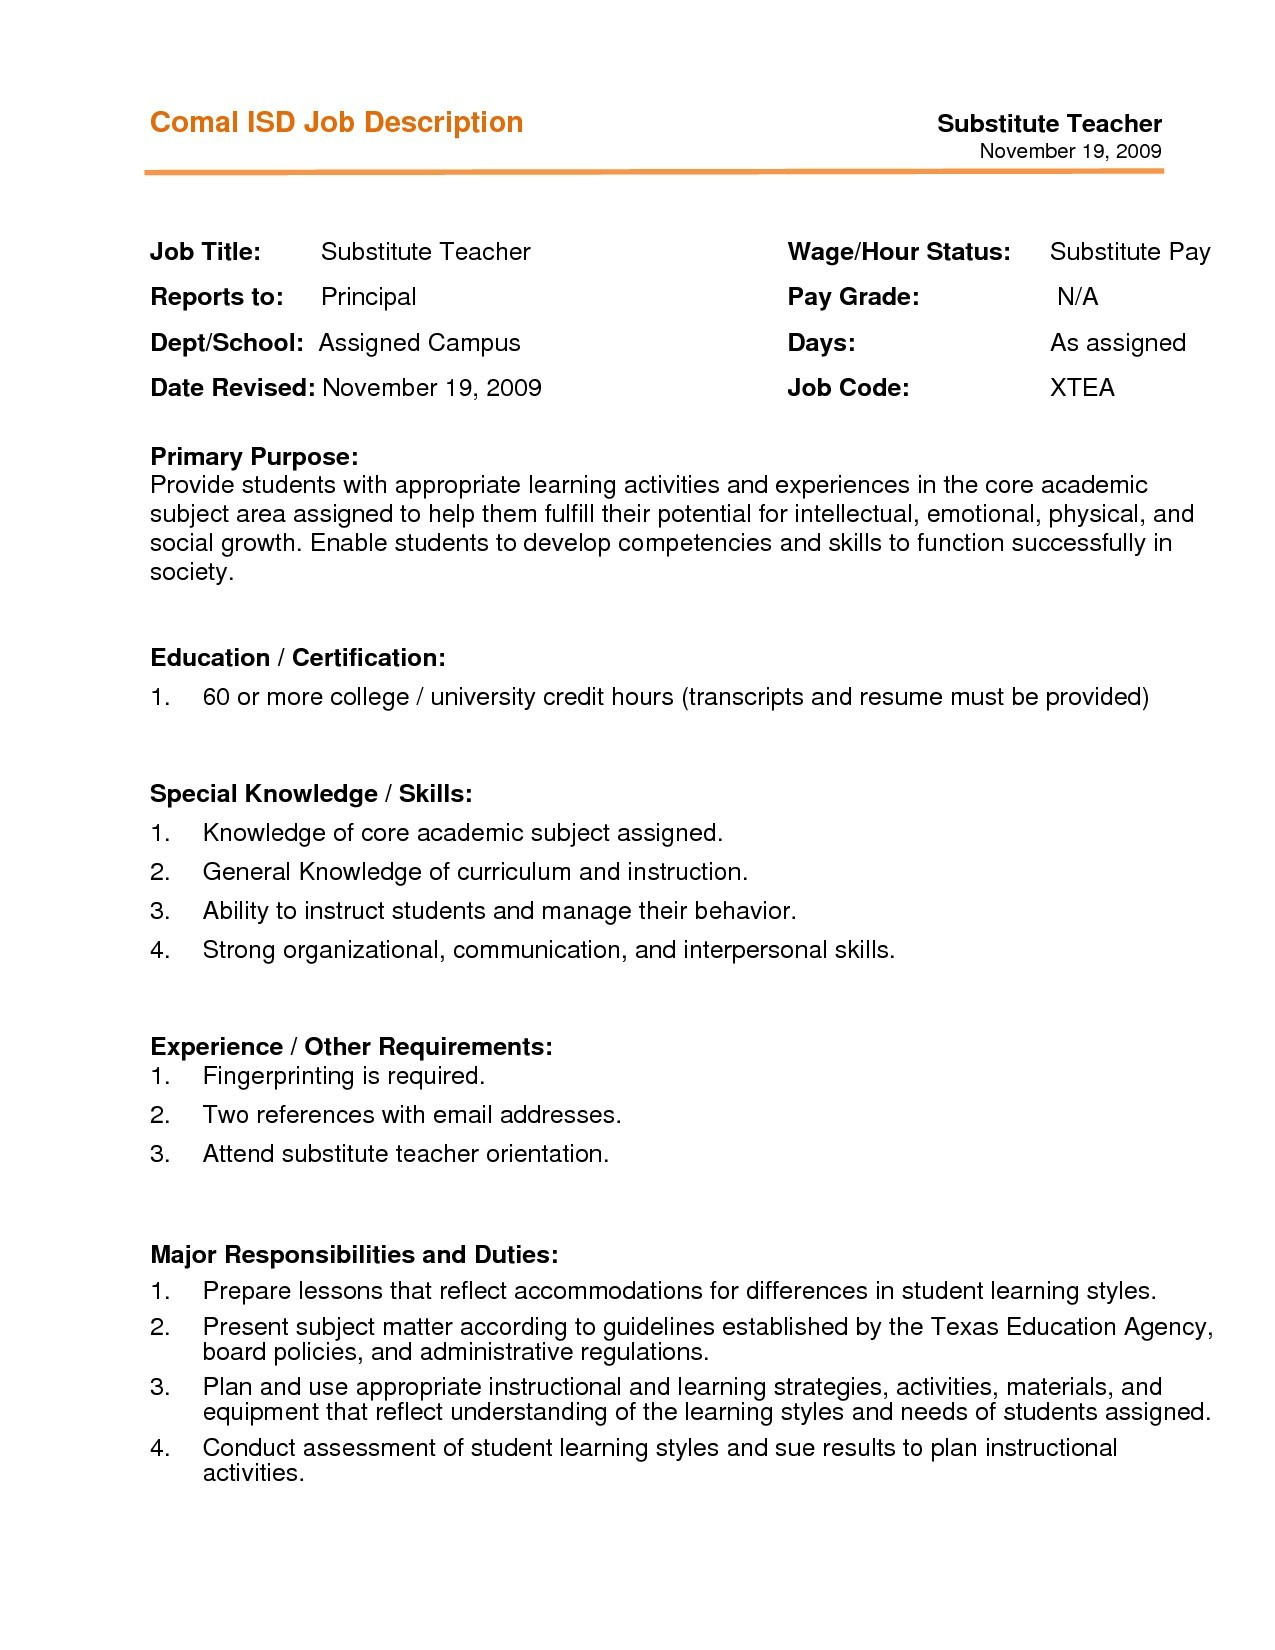 Job Title In Resume - Report Writer Resume Elegant Fresh Resume 0d Resume for Substitute